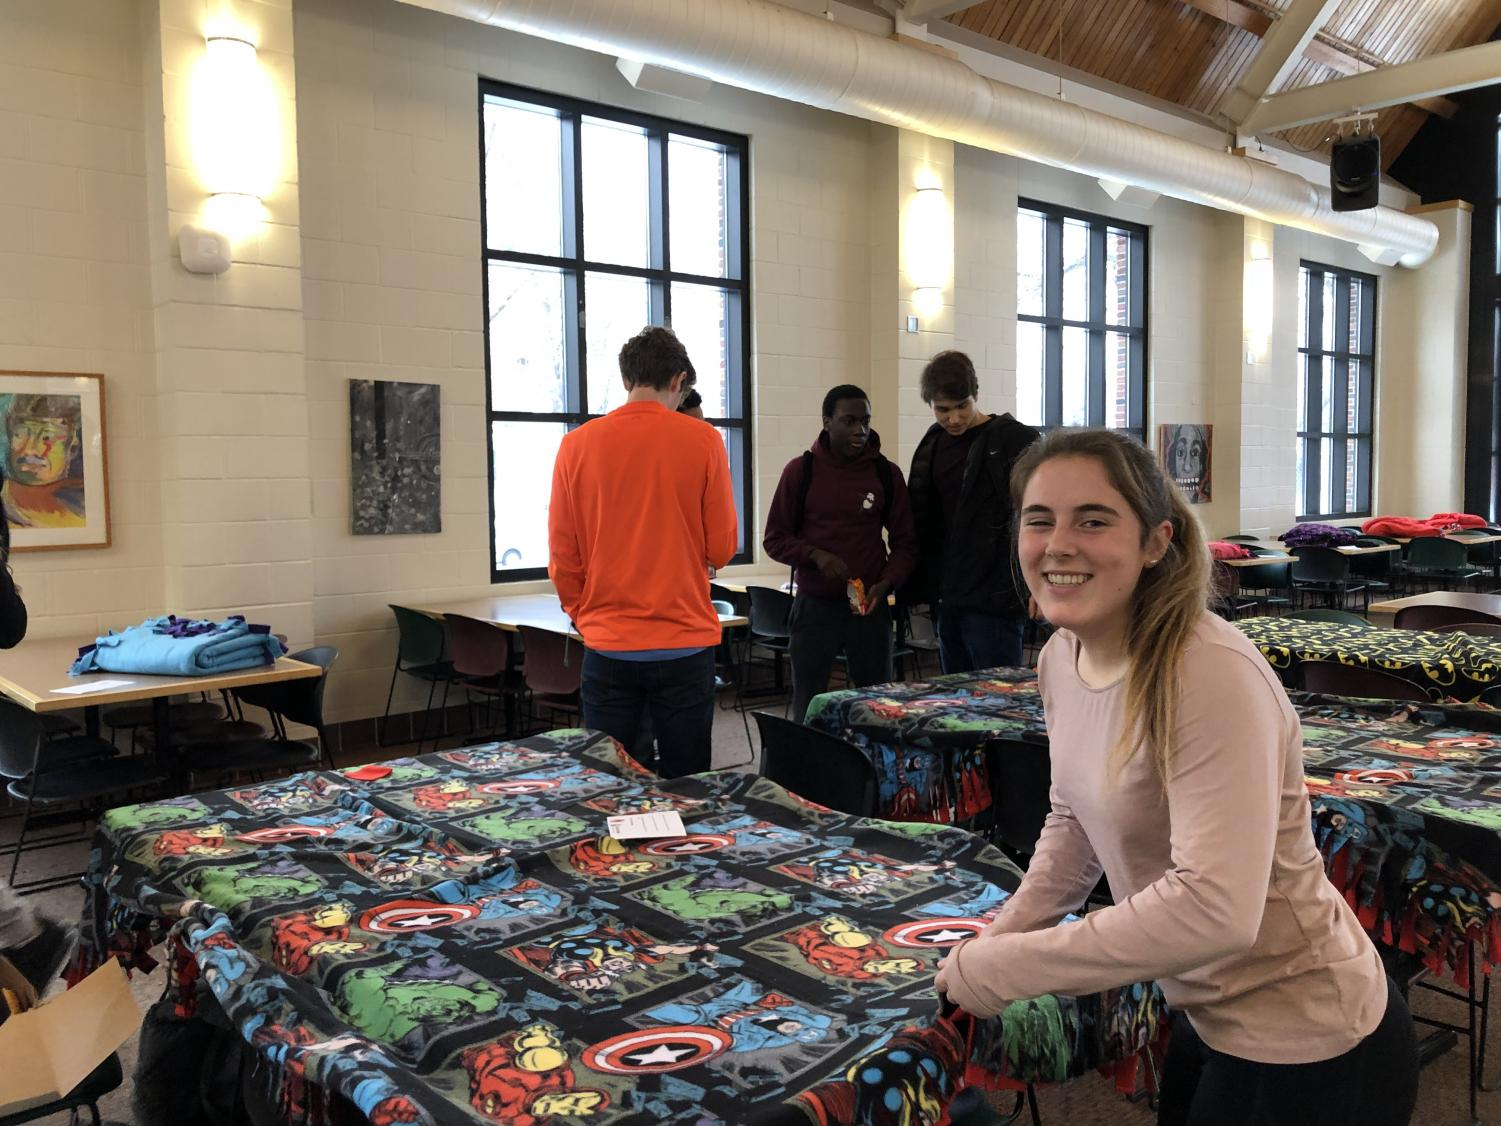 Senior Tessah green works on a tie-blanket for the My Very Own Bed organization.